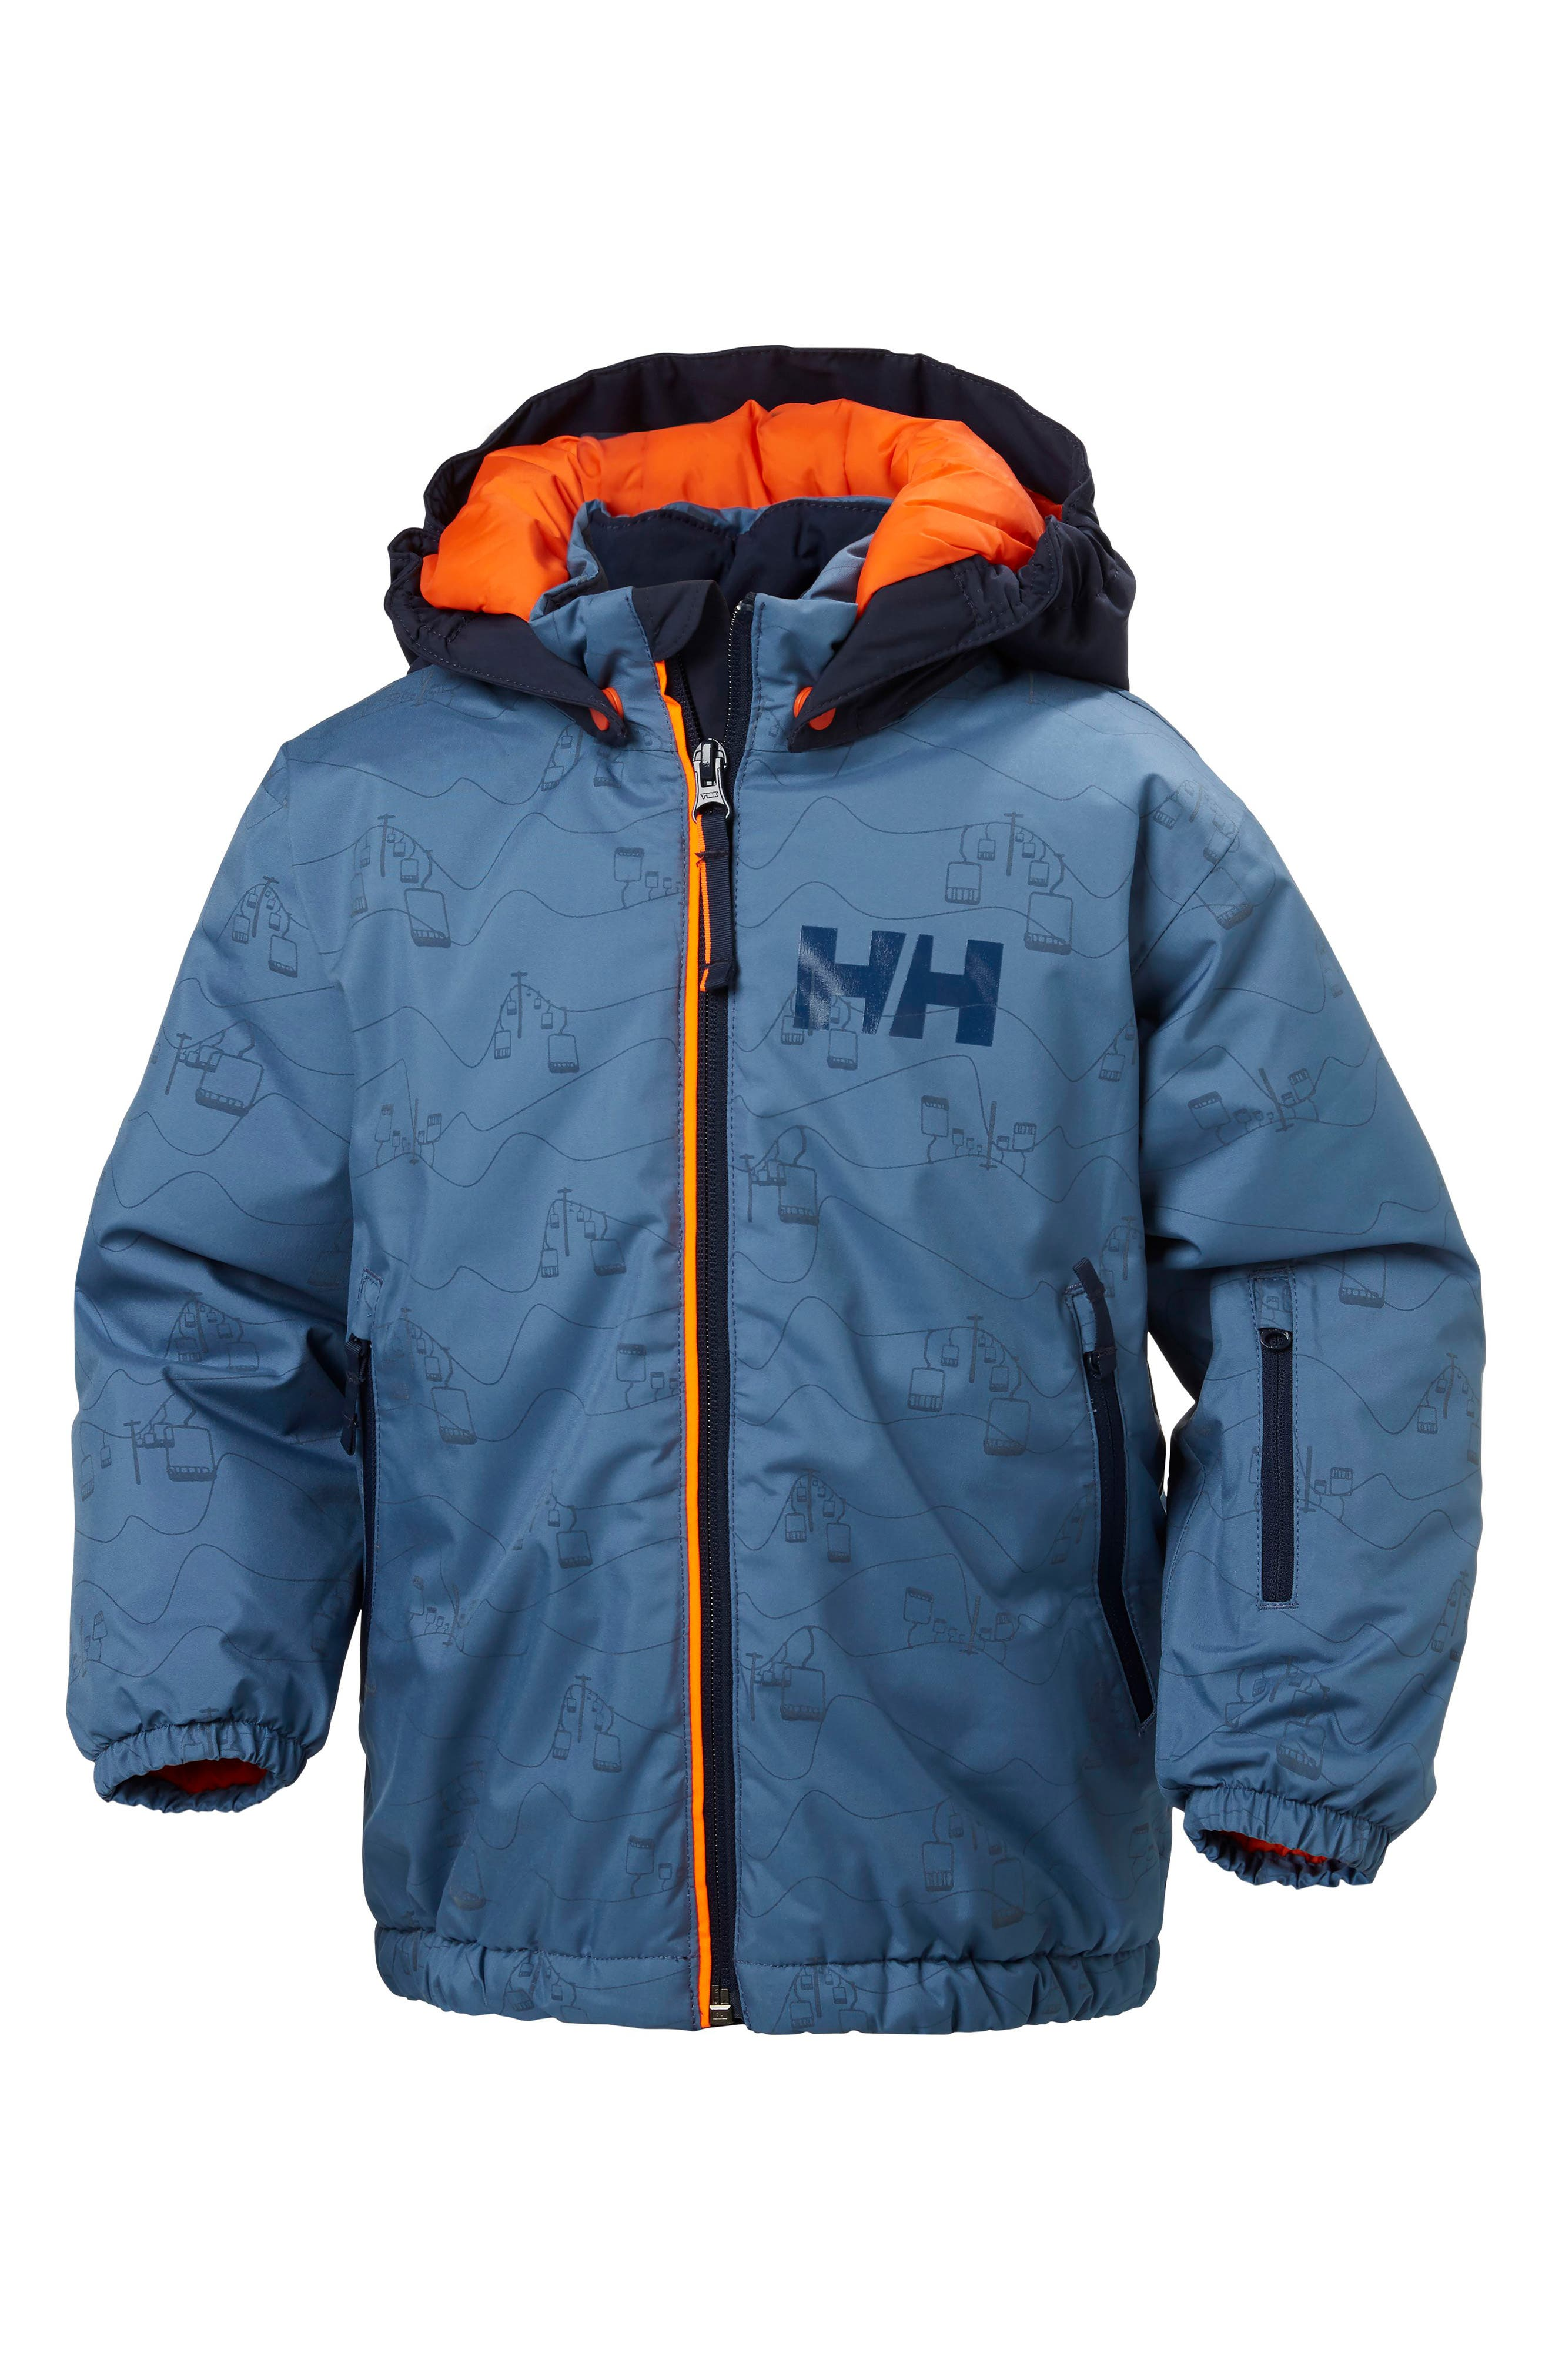 Alternate Image 1 Selected - Helly Hansen Snowfall Waterproof Insulated Jacket (Toddler Boys, Little Boys & Big Boys)